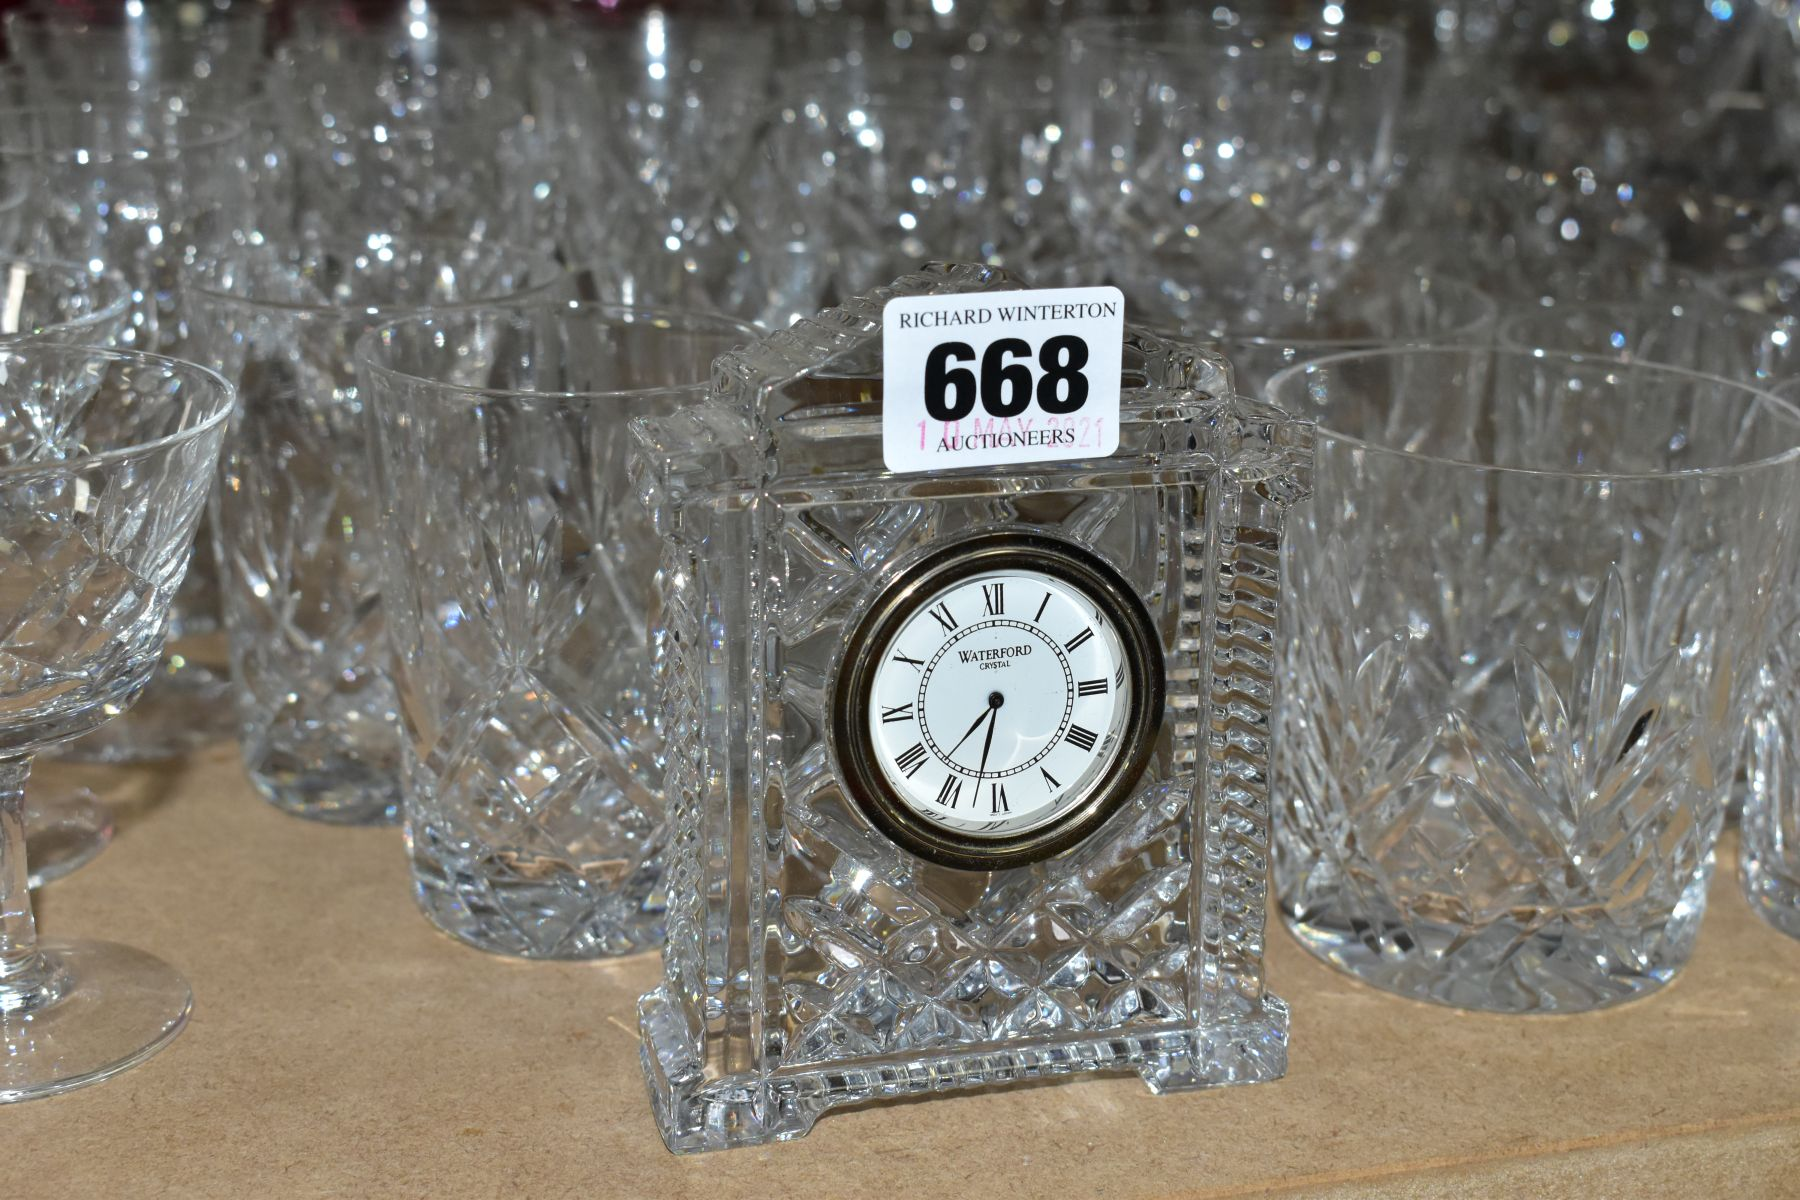 A QUANTITY OF GLASSWARE, including a Waterford Crystal quartz mantel clock, height 11cm, coloured - Image 3 of 9